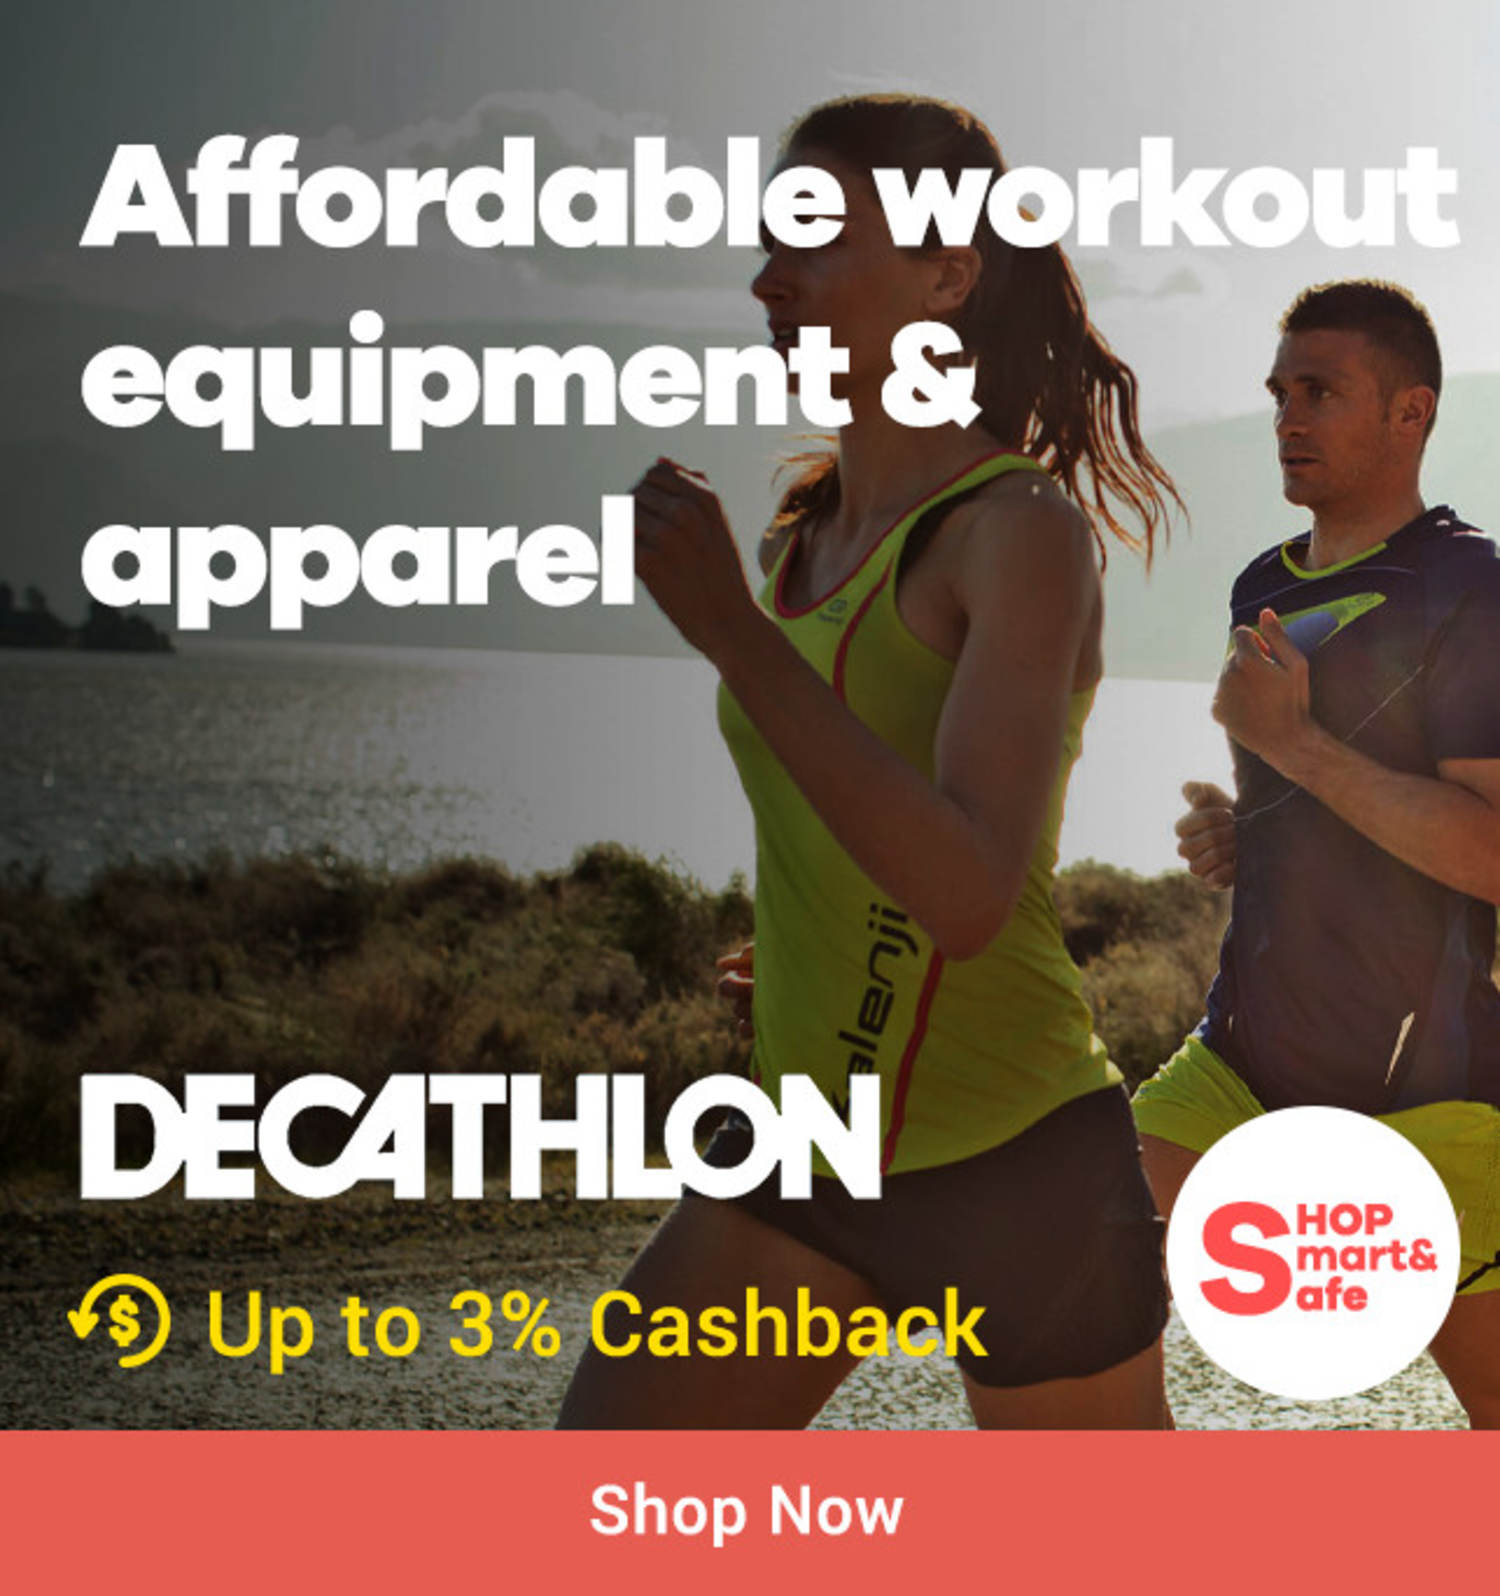 Decathlon: Affordable workout equipment & apparel